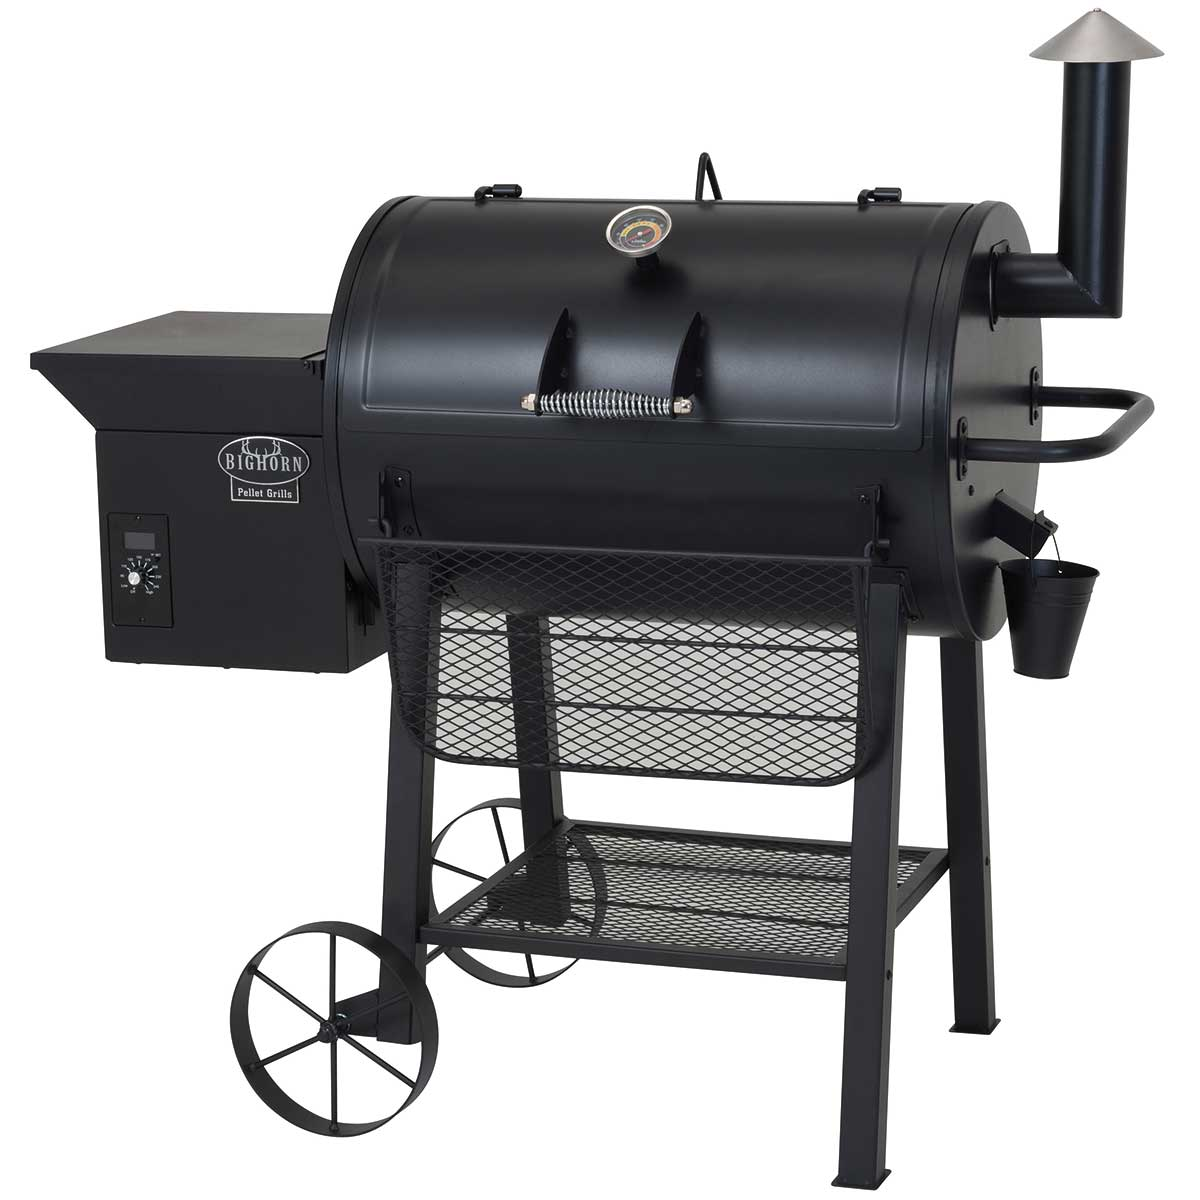 Big Horn Pellet Grill BBQ Featured Image